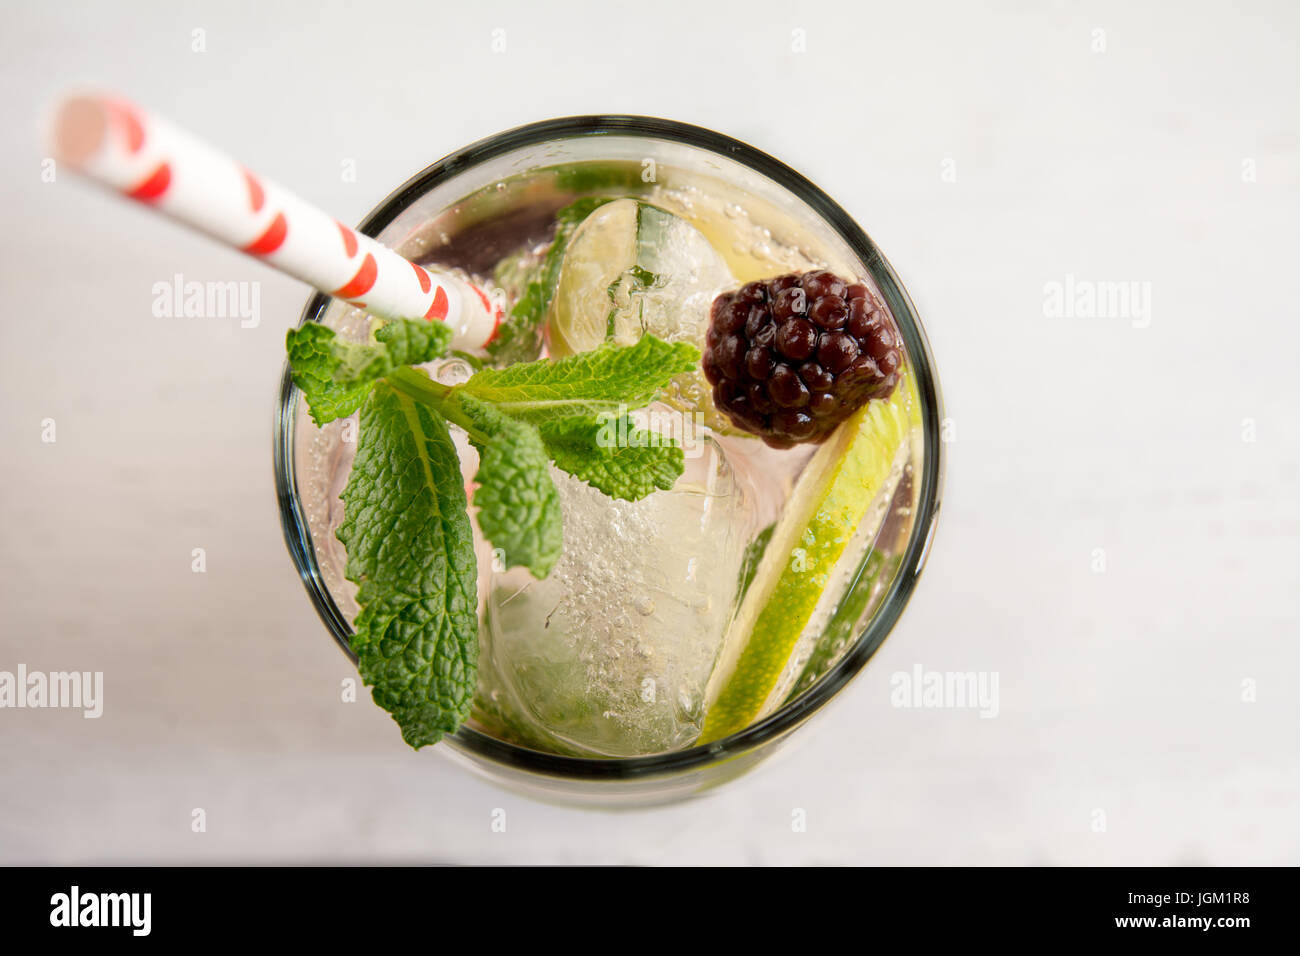 Gin tonic cocktail with lime, red fruit ice and mint, white background. Close up detail - Stock Image